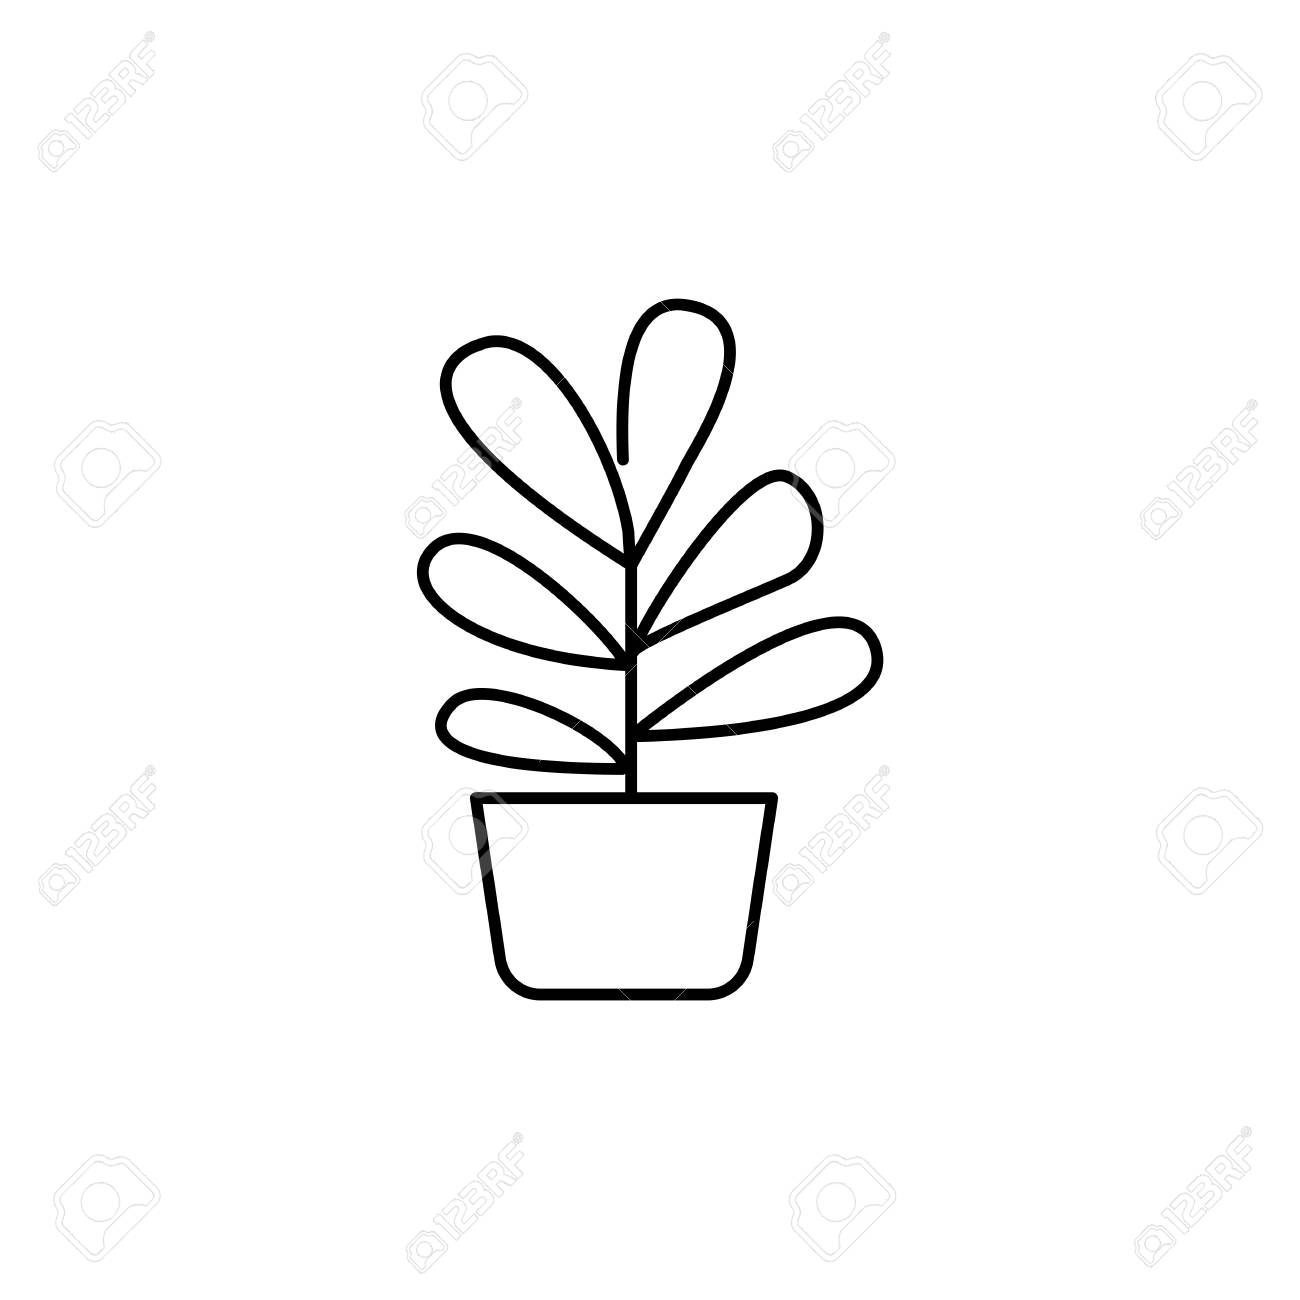 Black & white vector illustration of plant with leaves in pot.